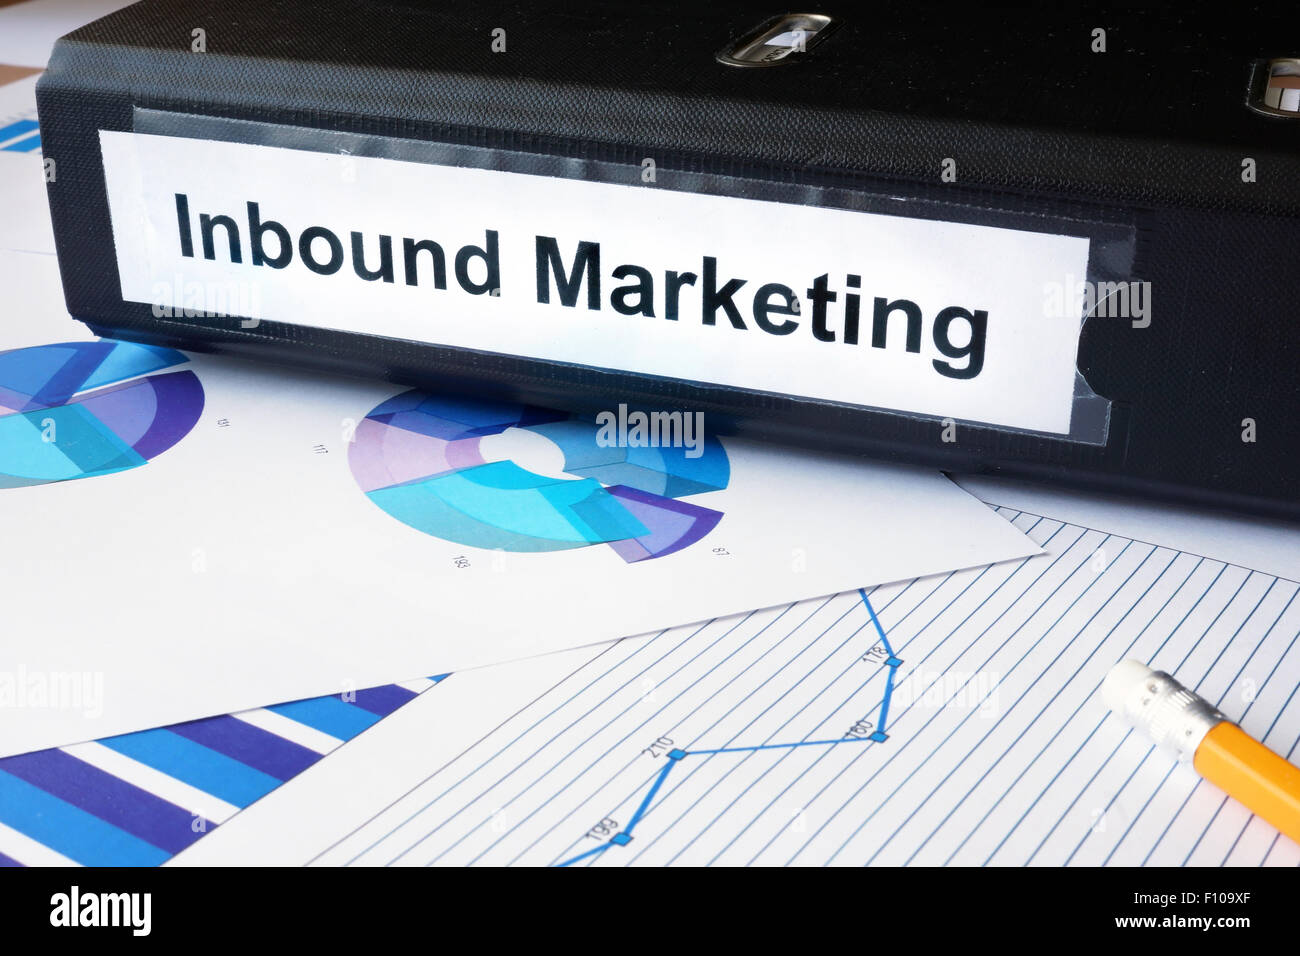 Graphs and file folder with label Inbound Marketing. Business concept. - Stock Image